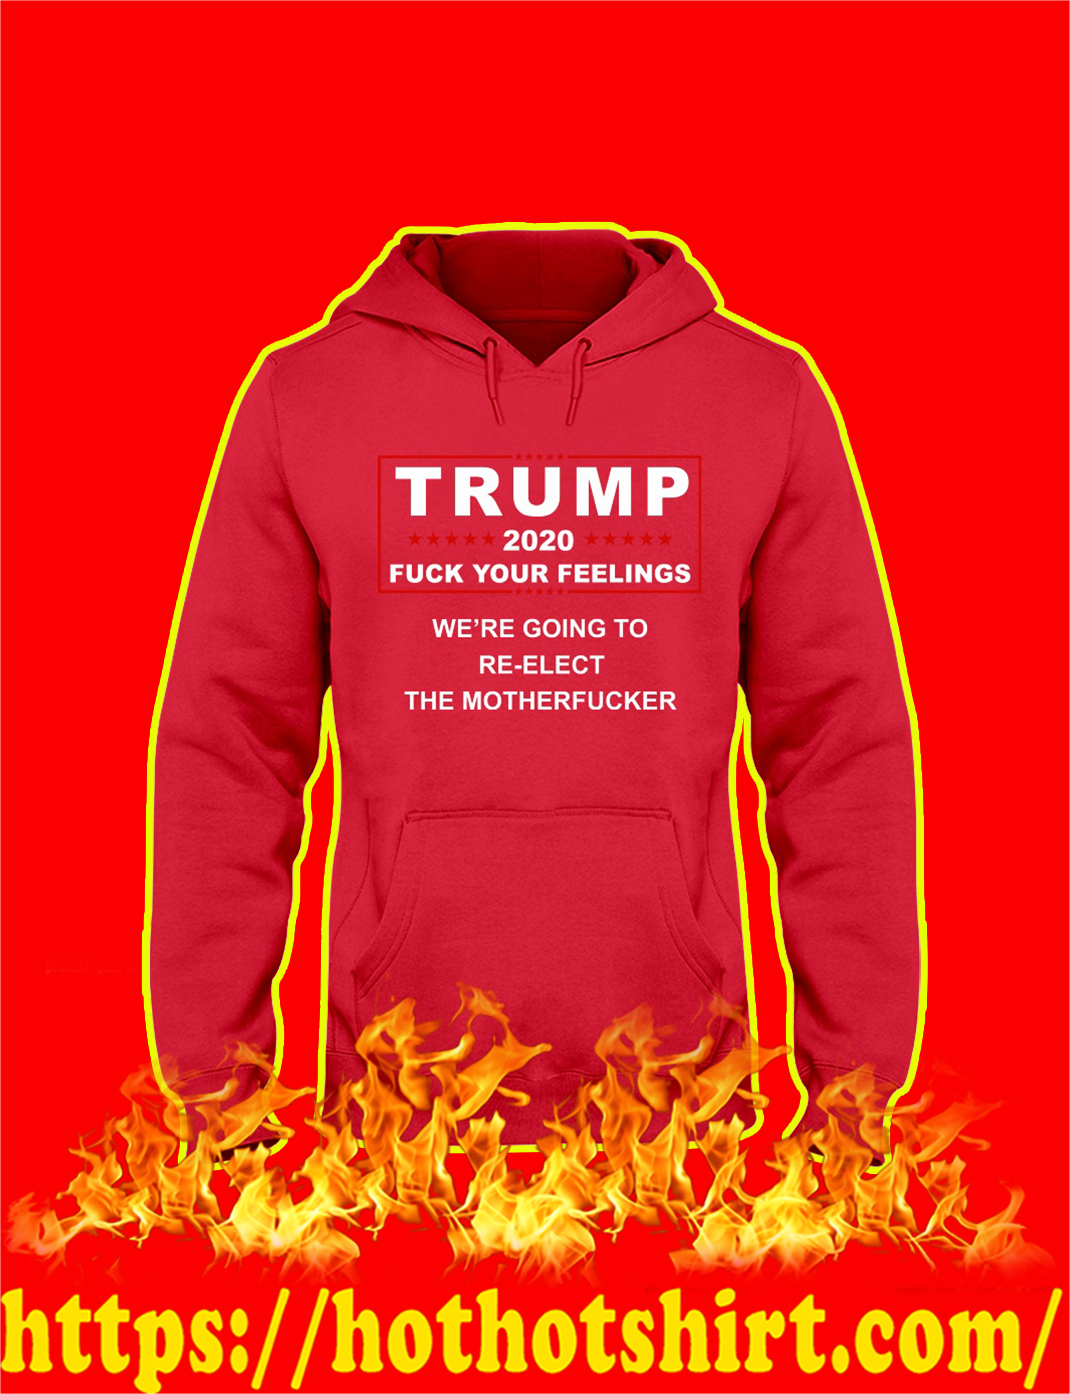 Trump 2020 Fuck Your Feelings hoodie